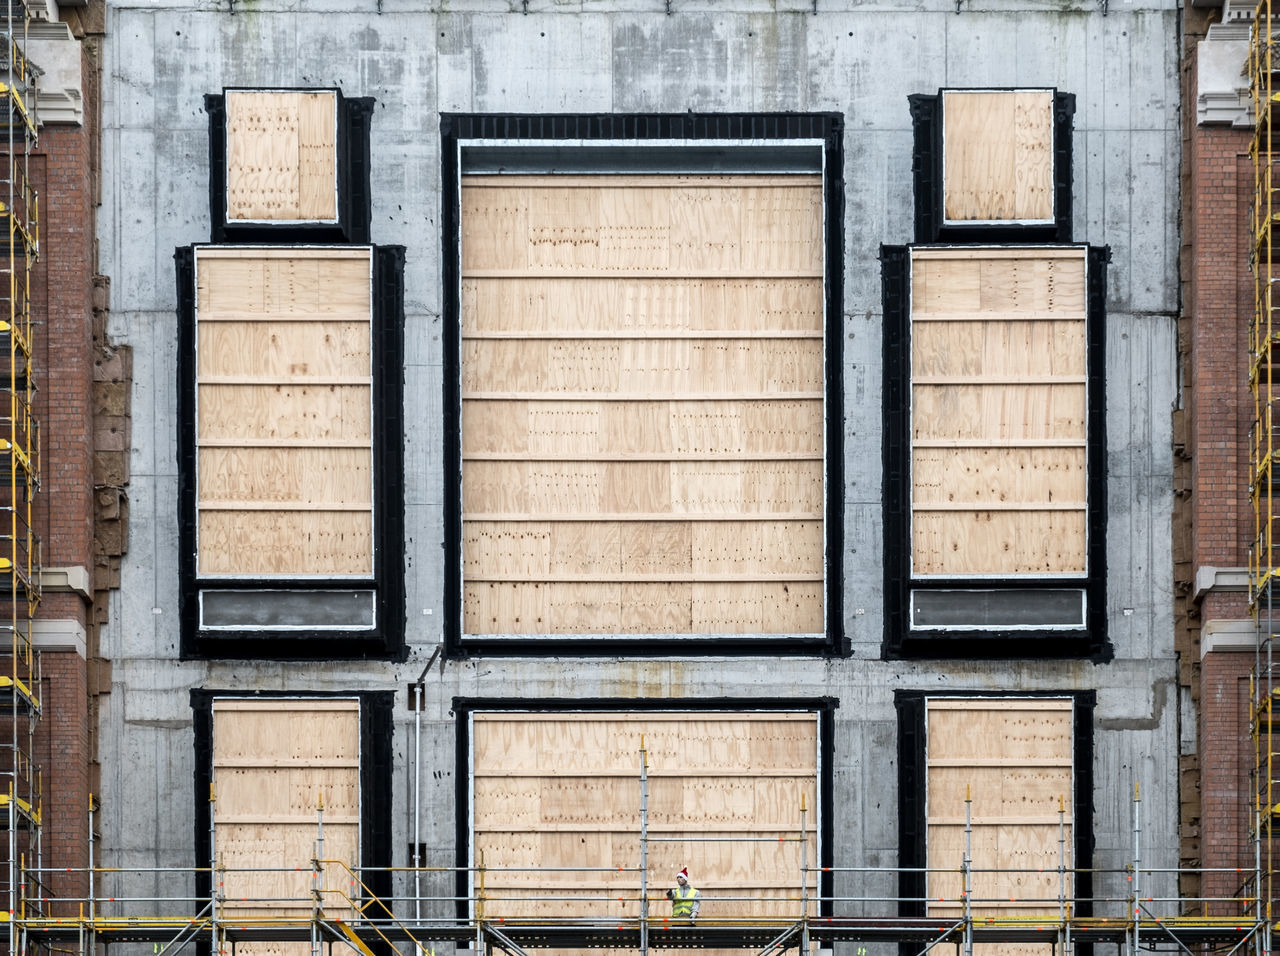 Constructionartfacade Architectural Detail Architectural Feature Architecture Architecture_collection Architecturelovers Building Exterior Building Story Built Structure Close-up Façade No People Outdoors Urban Geometry Urbanphotography